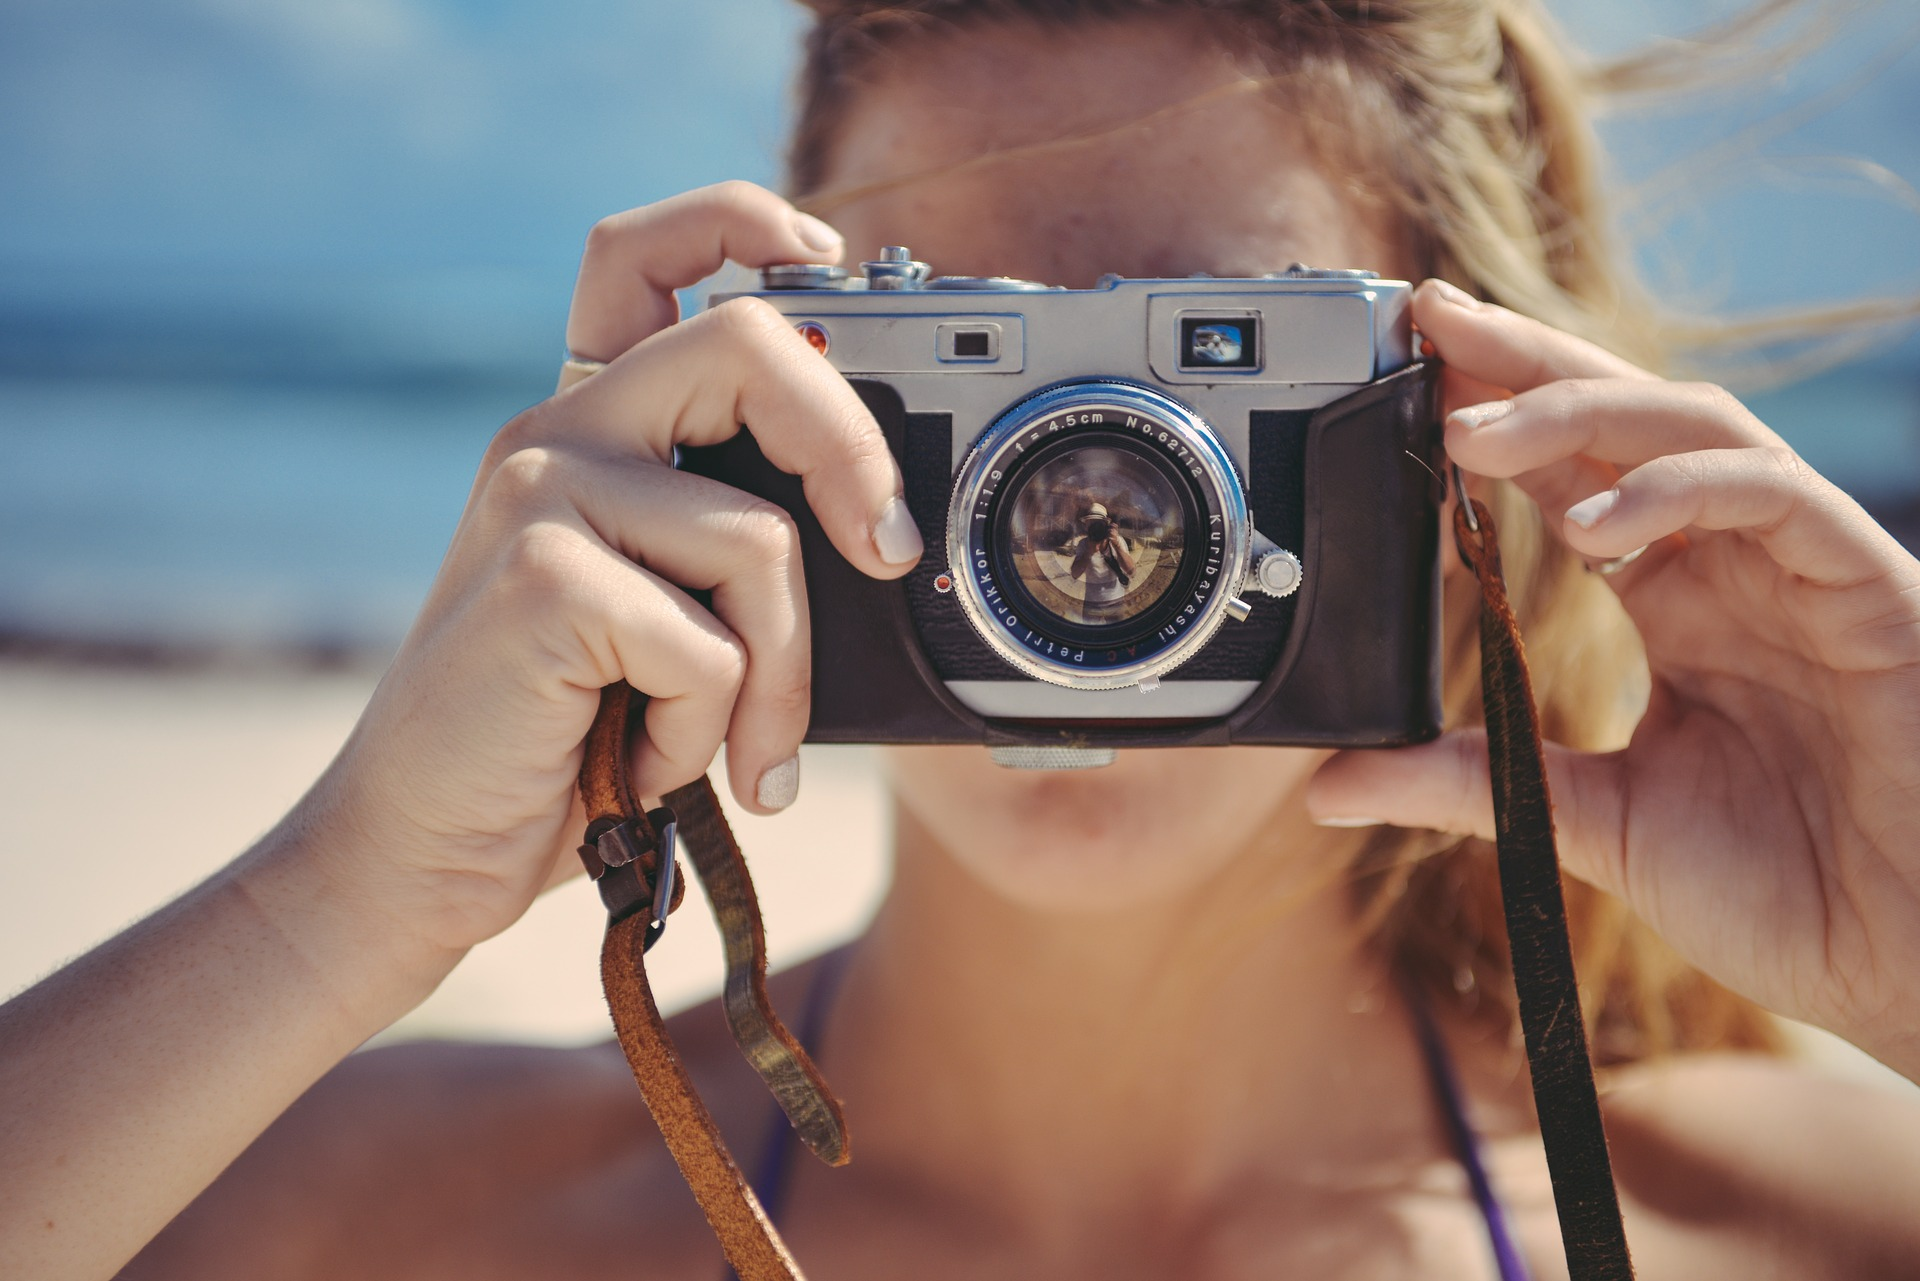 10 Interesting How-To Photography Guides Online